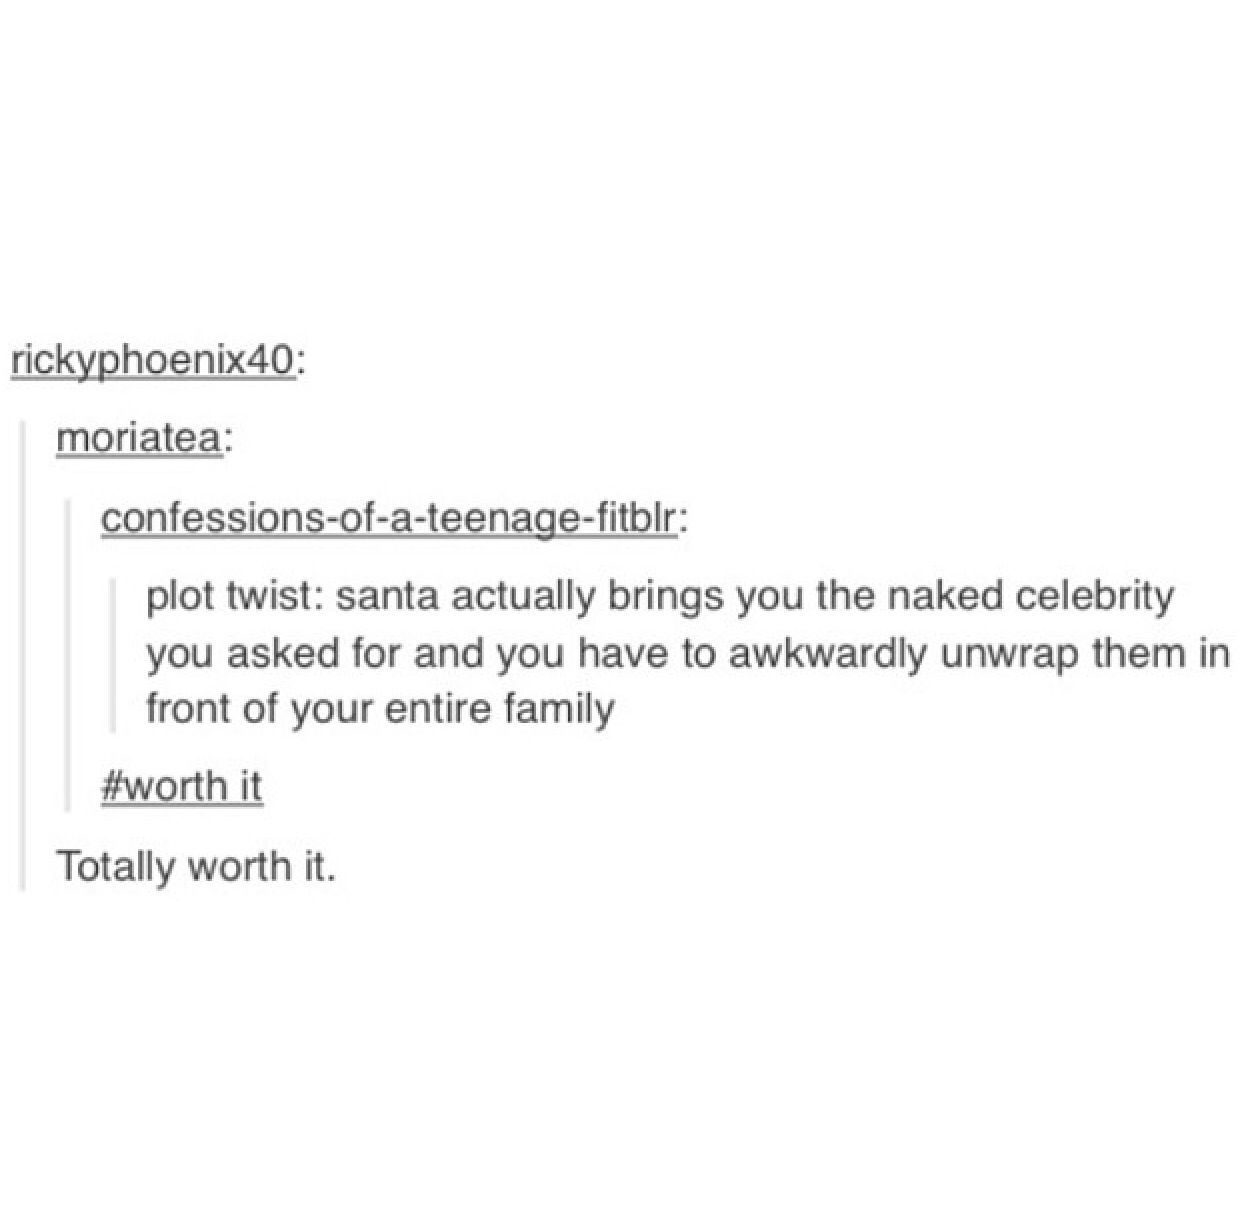 Tumblr, text post, funny, lol, lmao. It would totally be Misha Collins